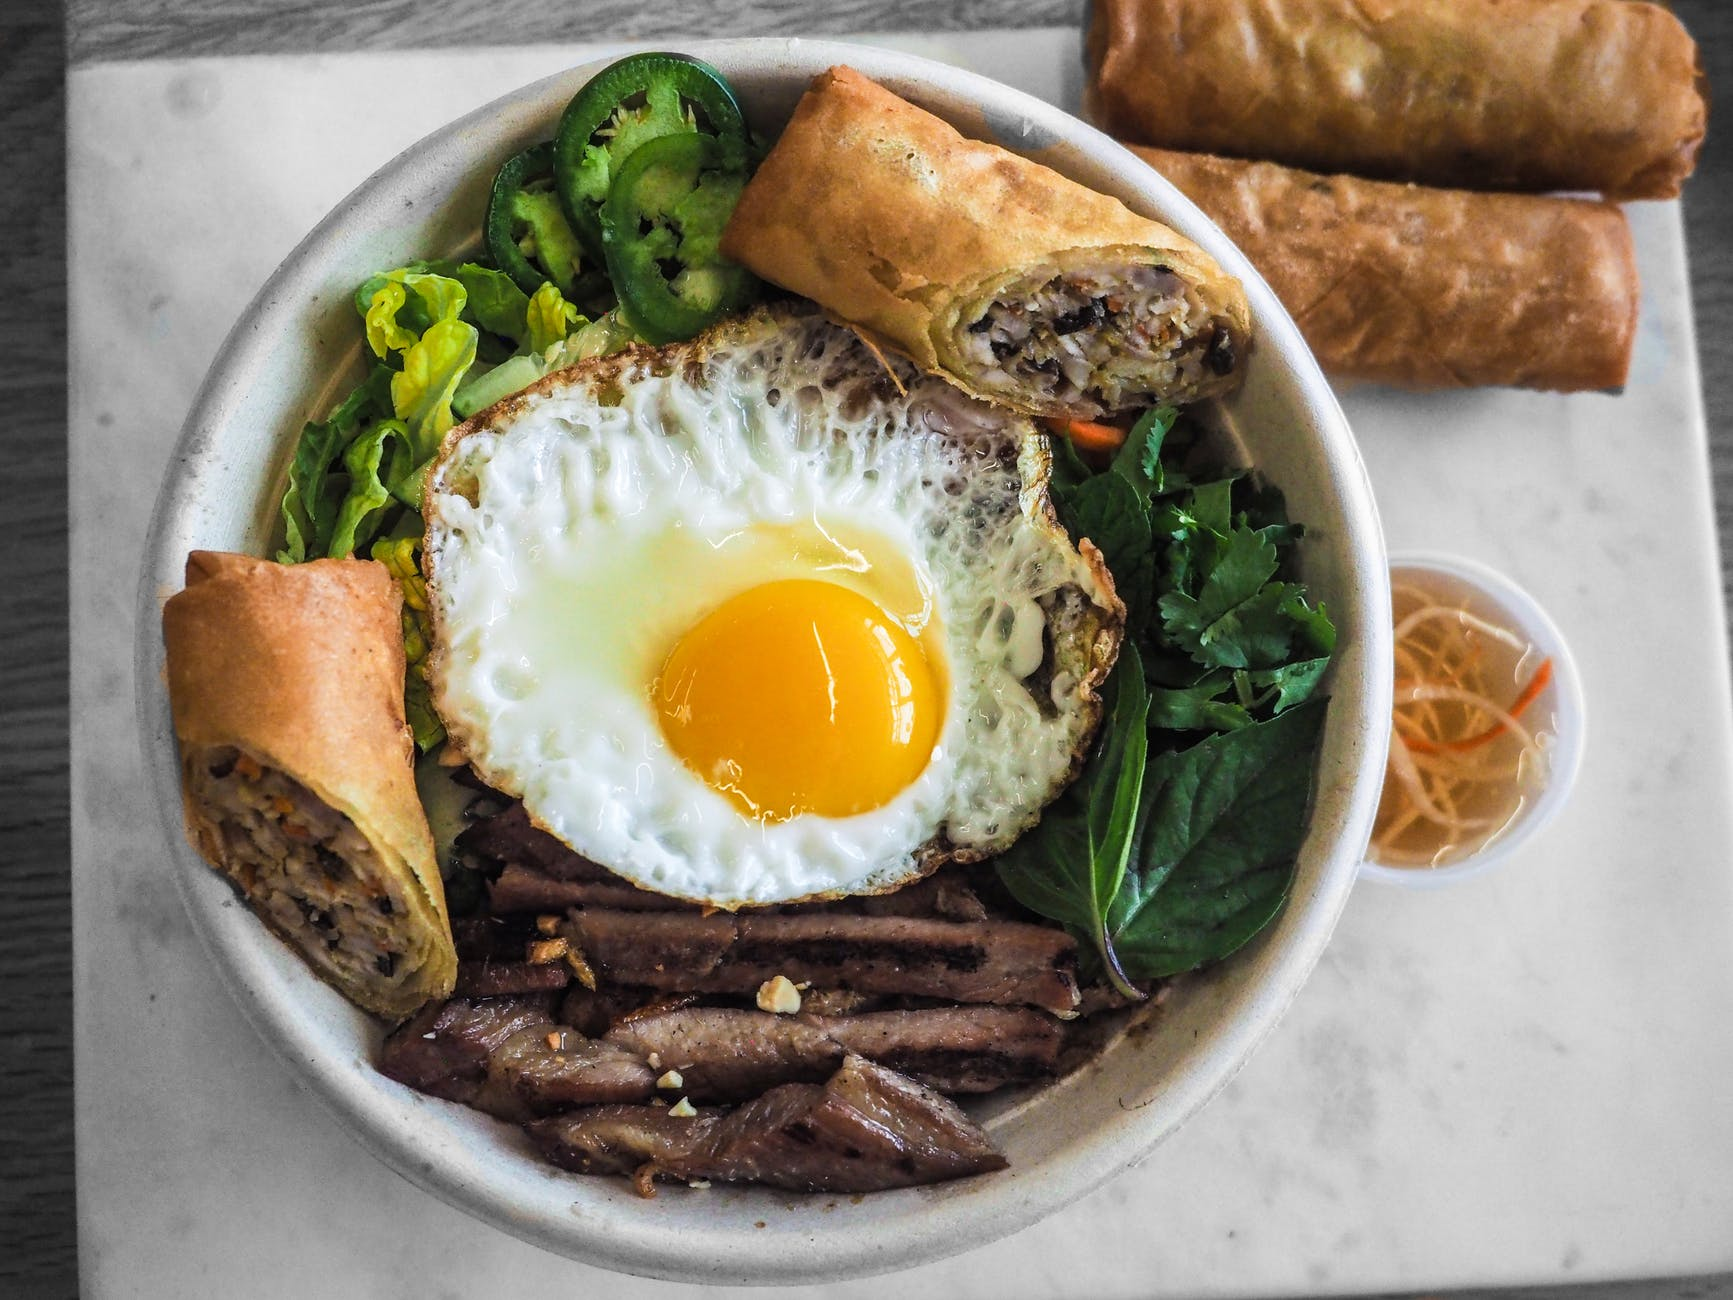 bowl of fried food and fried egg